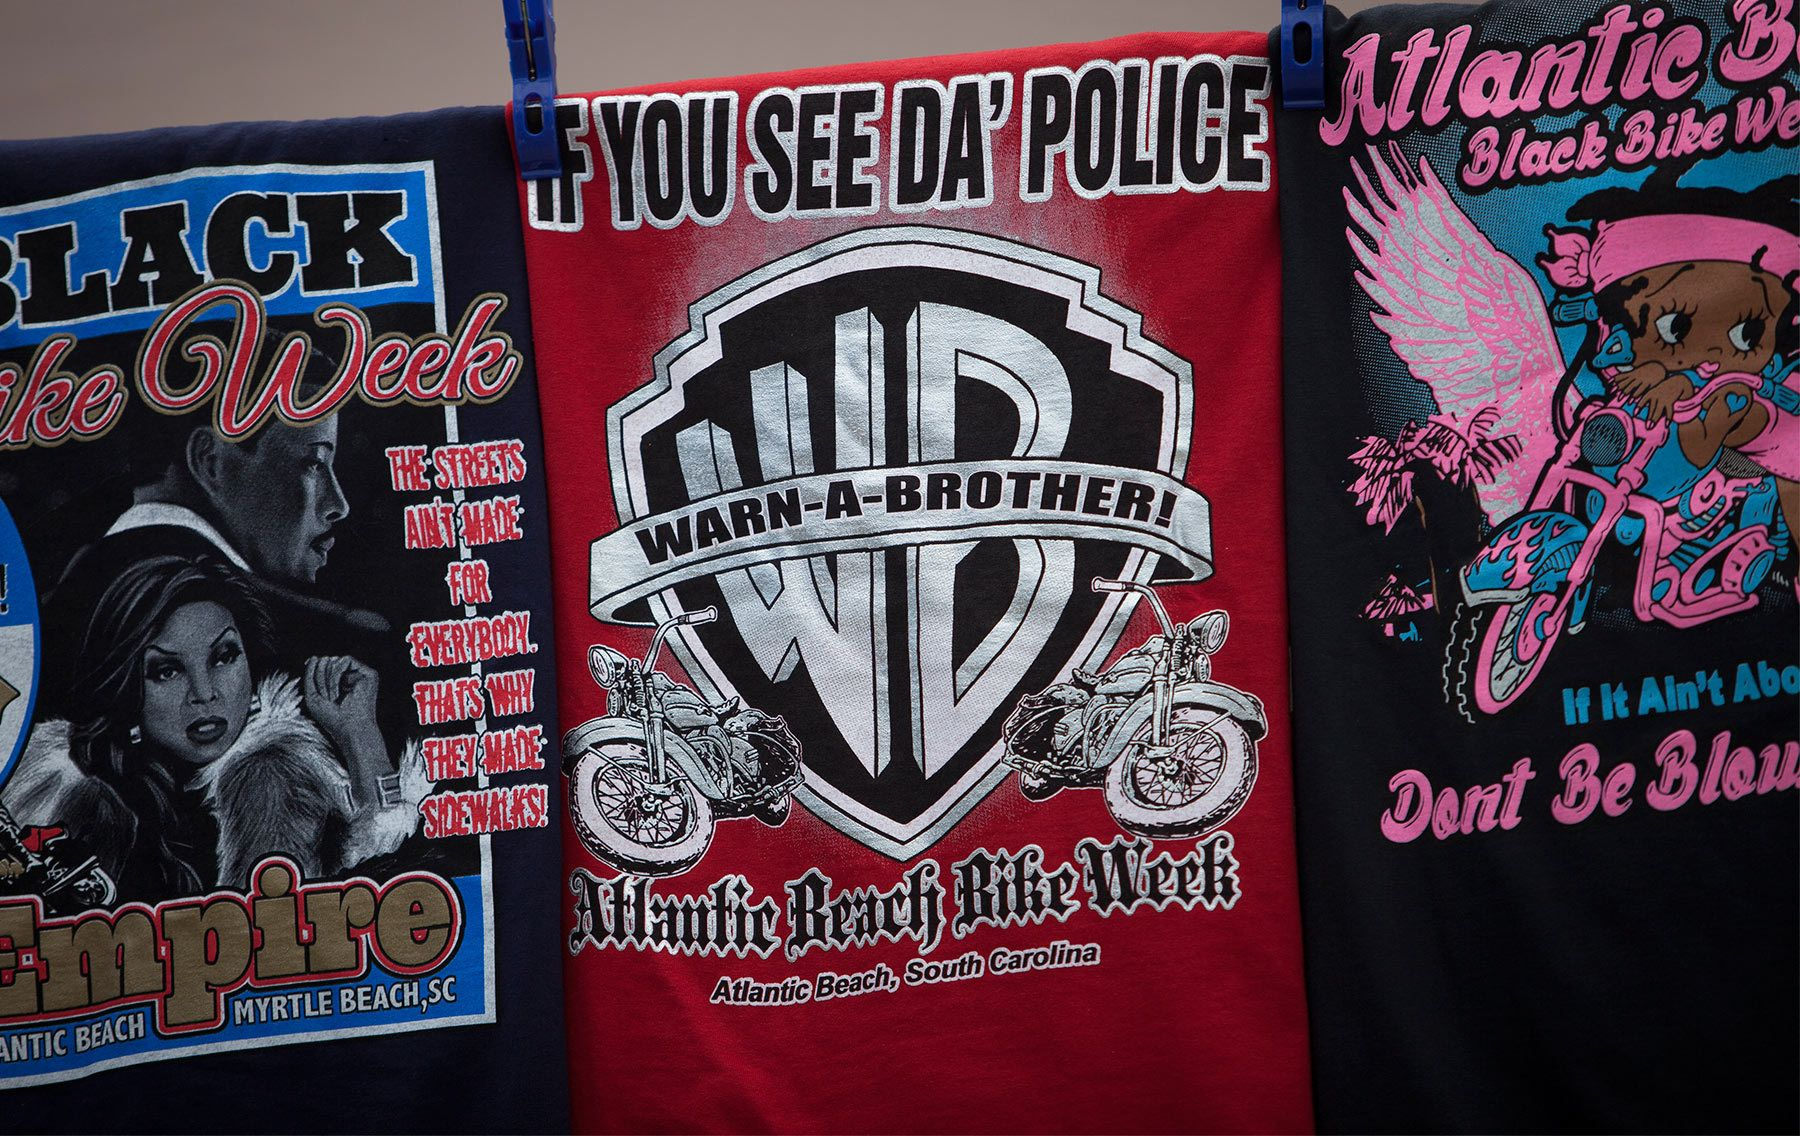 T-shirts are for sale at a vendor's booth during the 2015 Atlantic Beach Memorial Day BikeFest in Atlantic Beach, South Carolina May 22, 2015. After three people were killed and seven wounded in shootings during 2014 Bikefest, State officials called for an end to the event that draws thousands to the family-friendly beach town.Their efforts were unsuccessful. Bikers returned to Myrtle Beach - just a week after a bloody motorcycle gang shootout in Waco, Texas. But this time authorities are more prepared, with dozens of new surveillance cameras and a police force three times the size of last year's.    REUTERS/Randall Hill